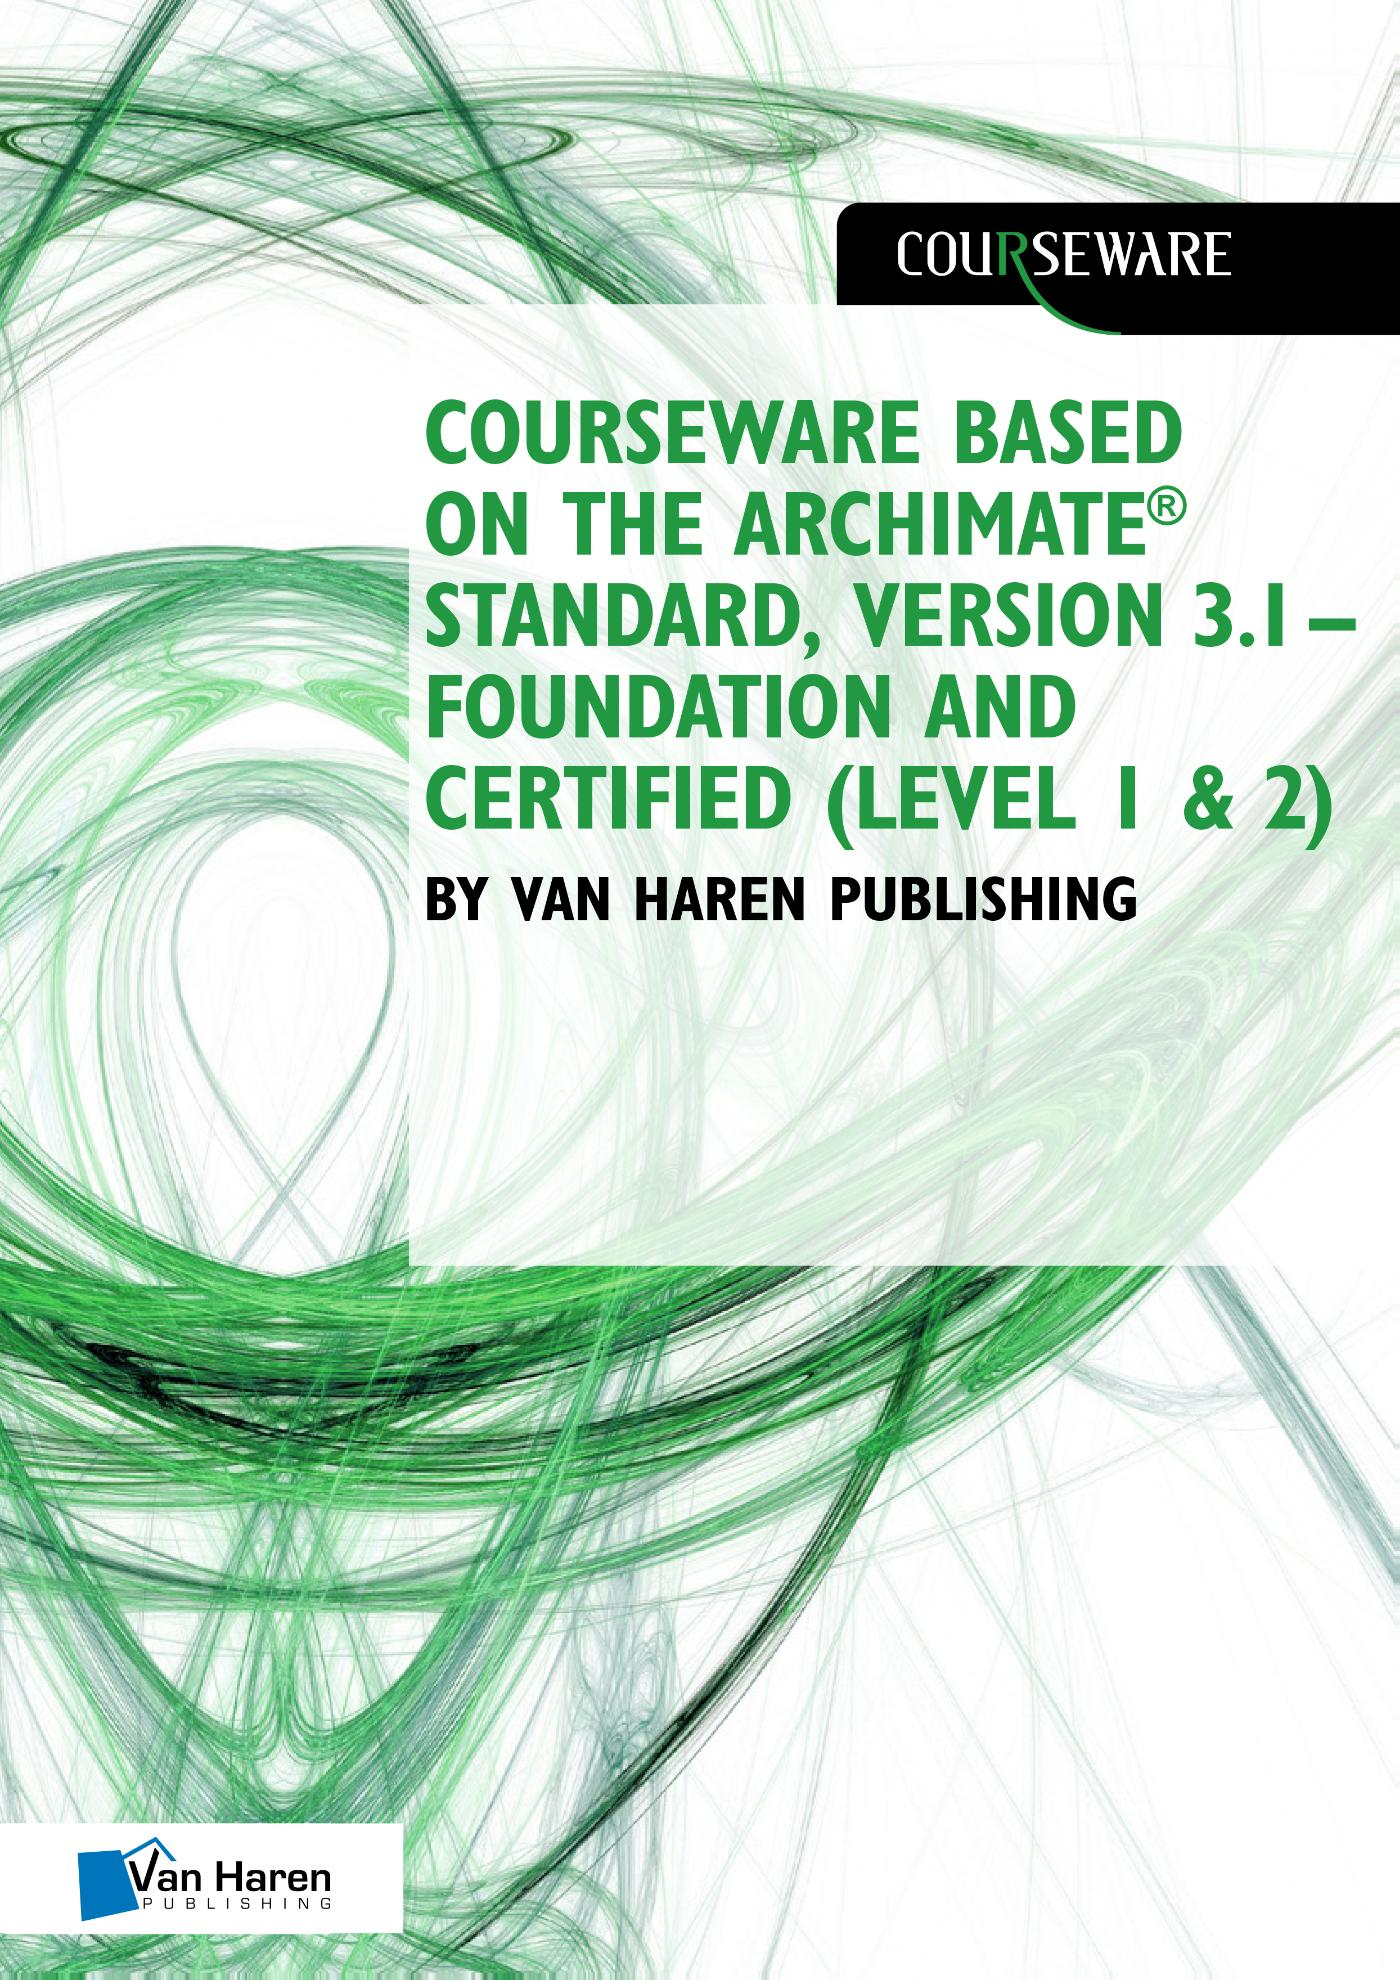 Courseware based on The Archimate® Standard, Version 3.1 – Foundation and Certified (Level 1 & 2)